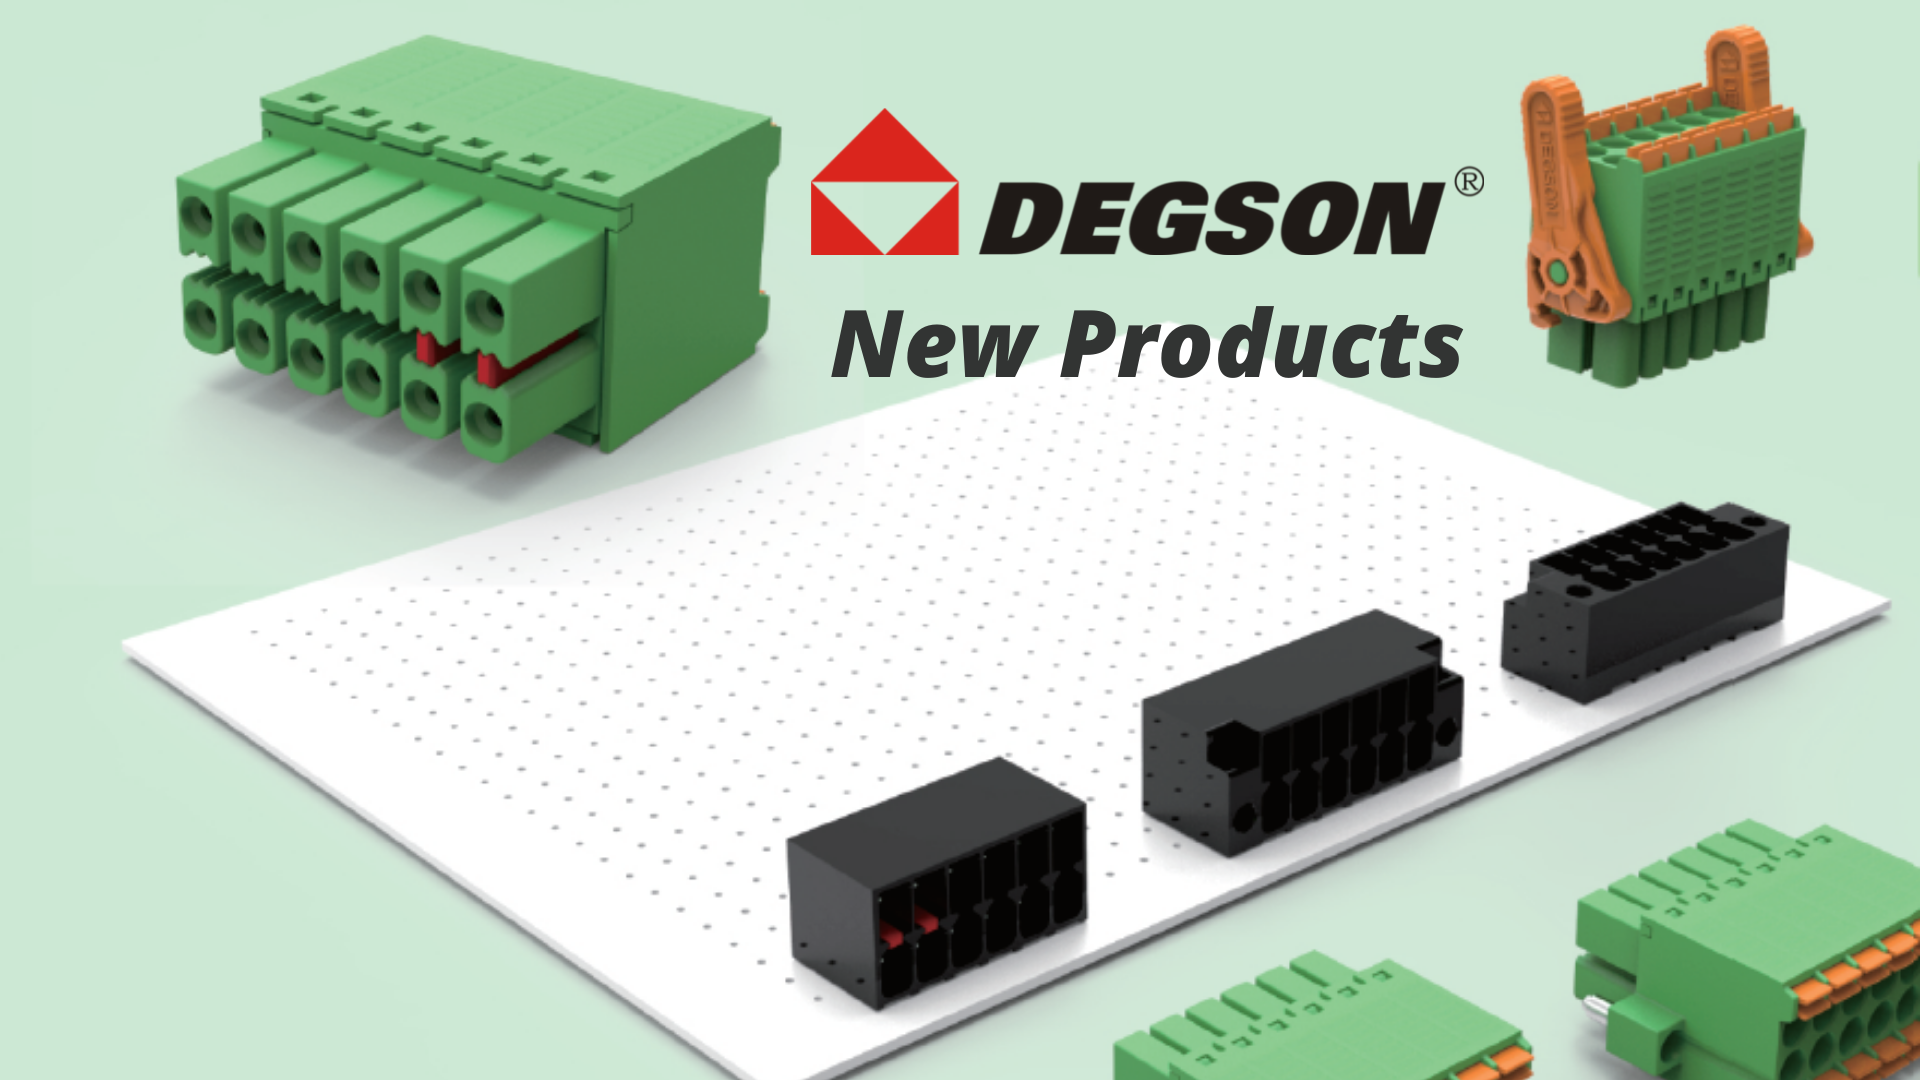 DEGSON New Product Release